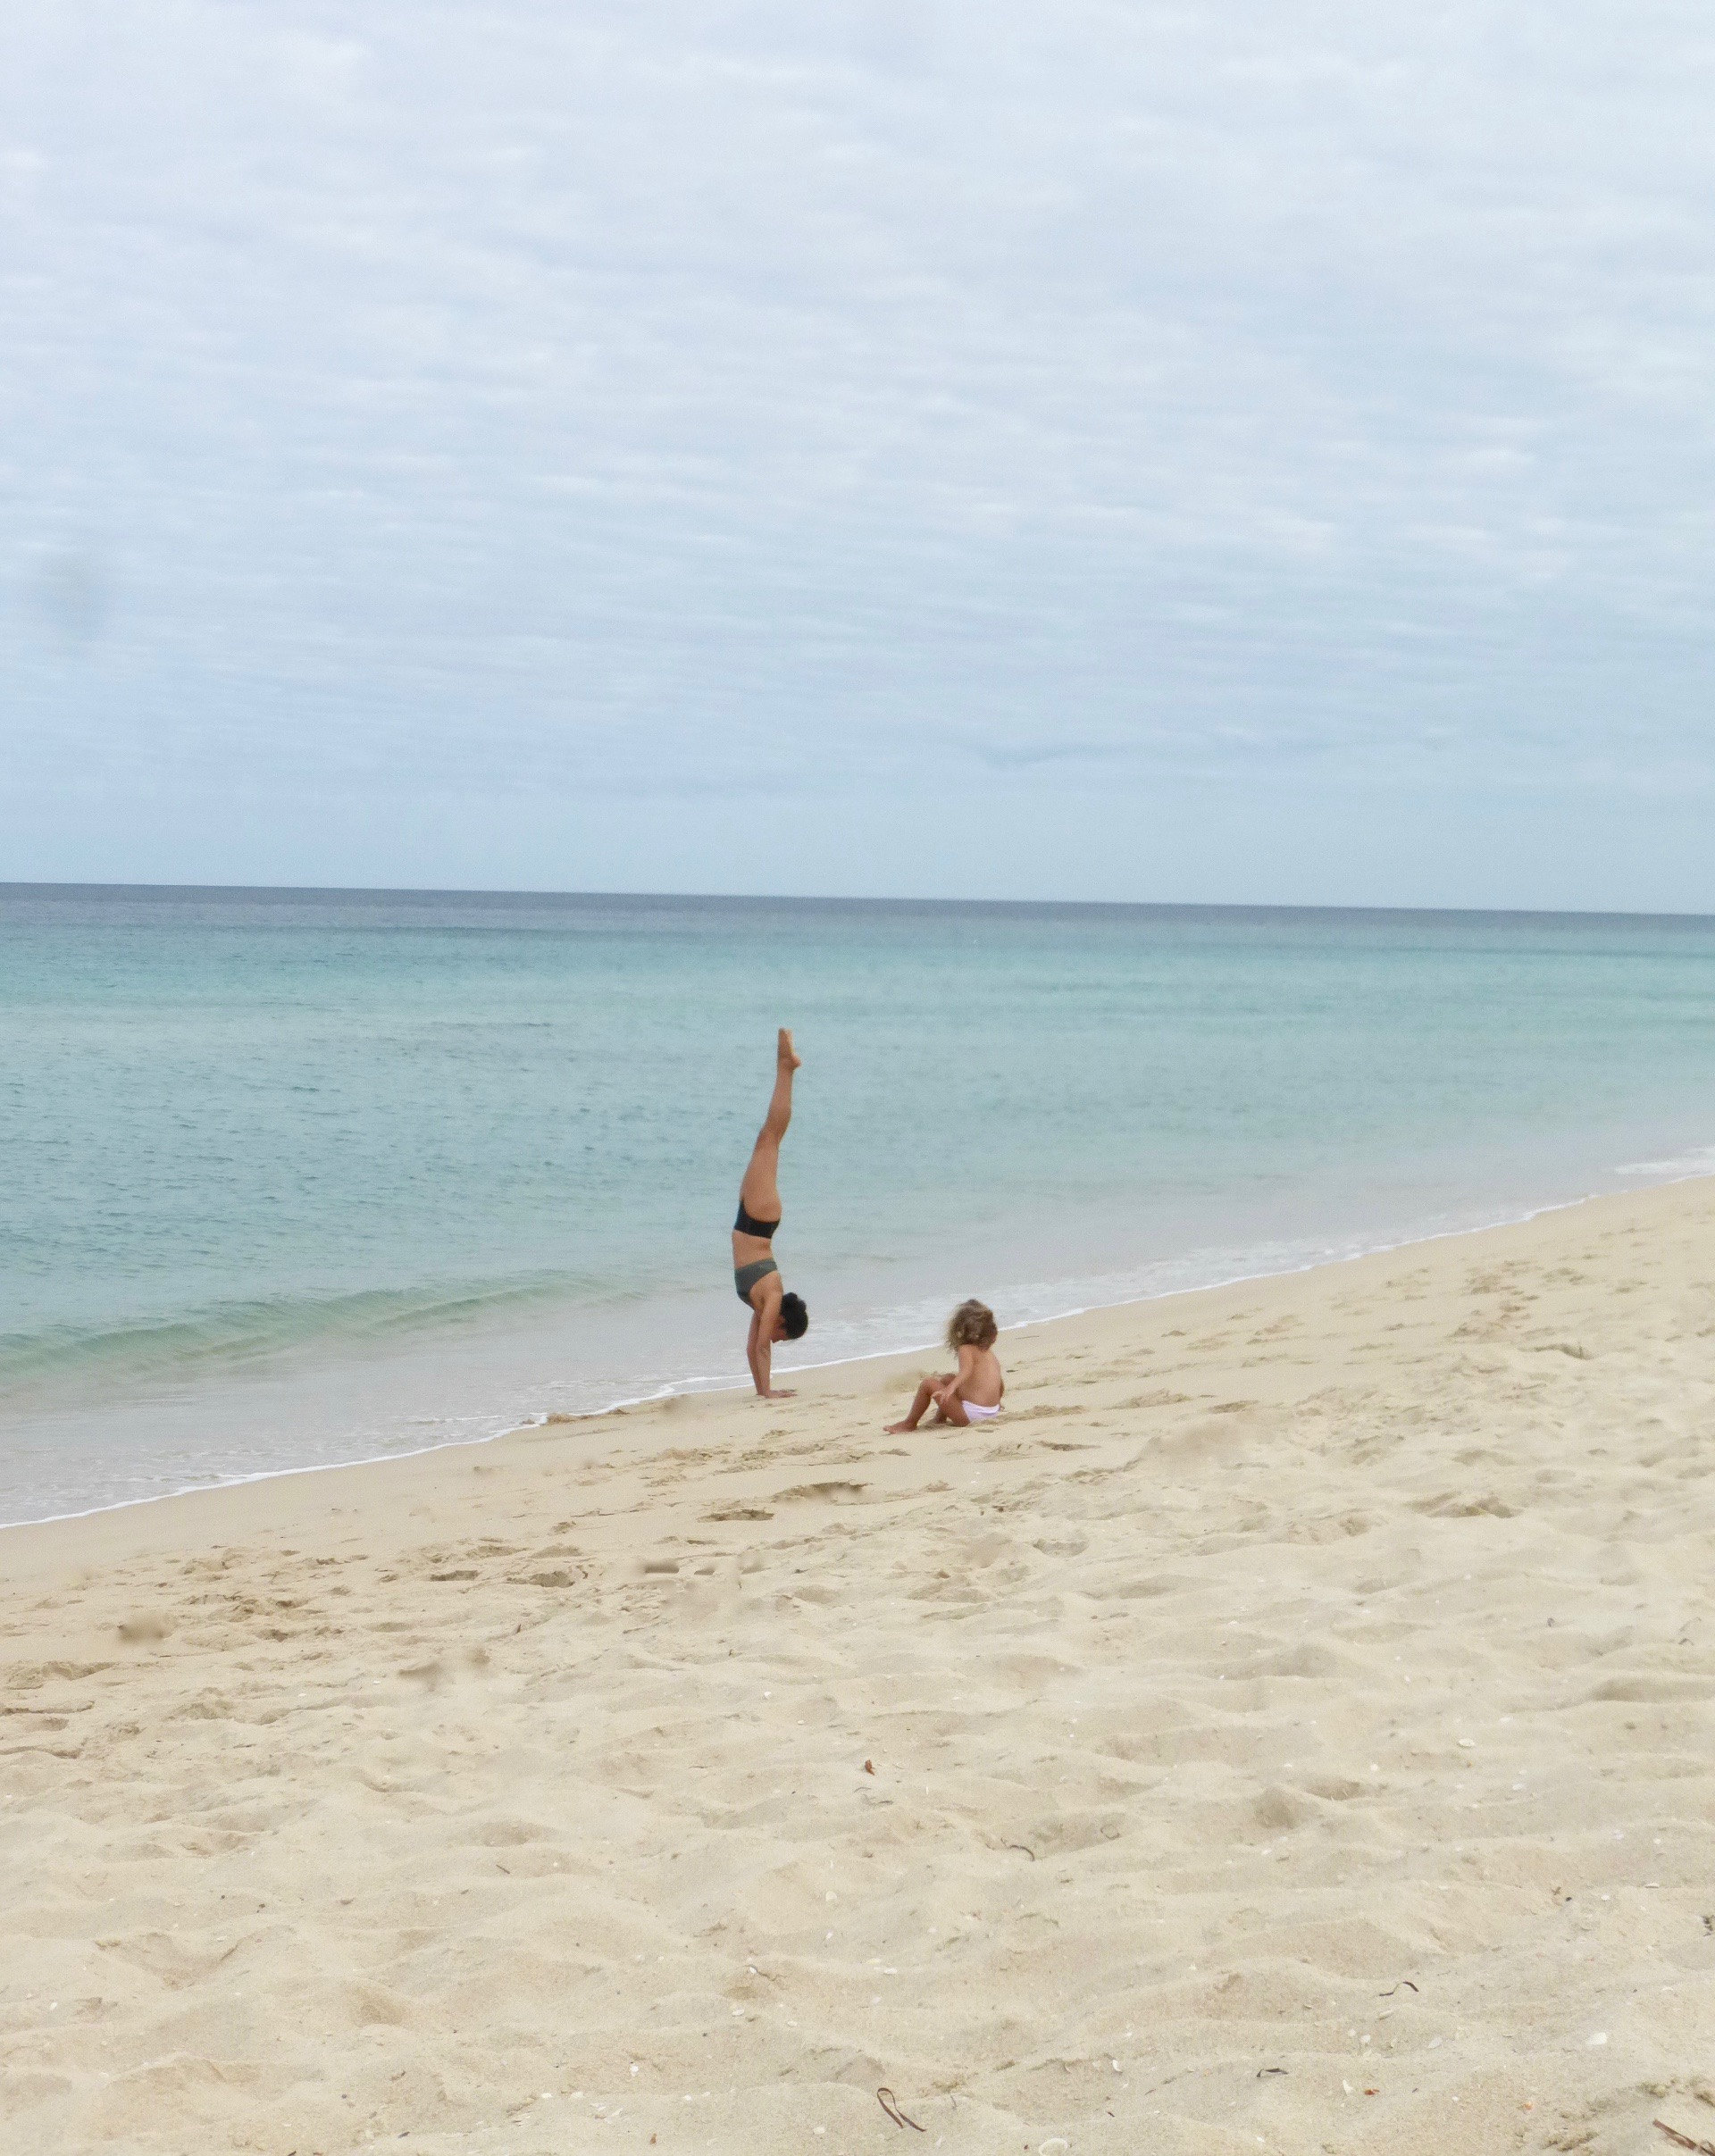 beach morning yoga handstand WA .jpg